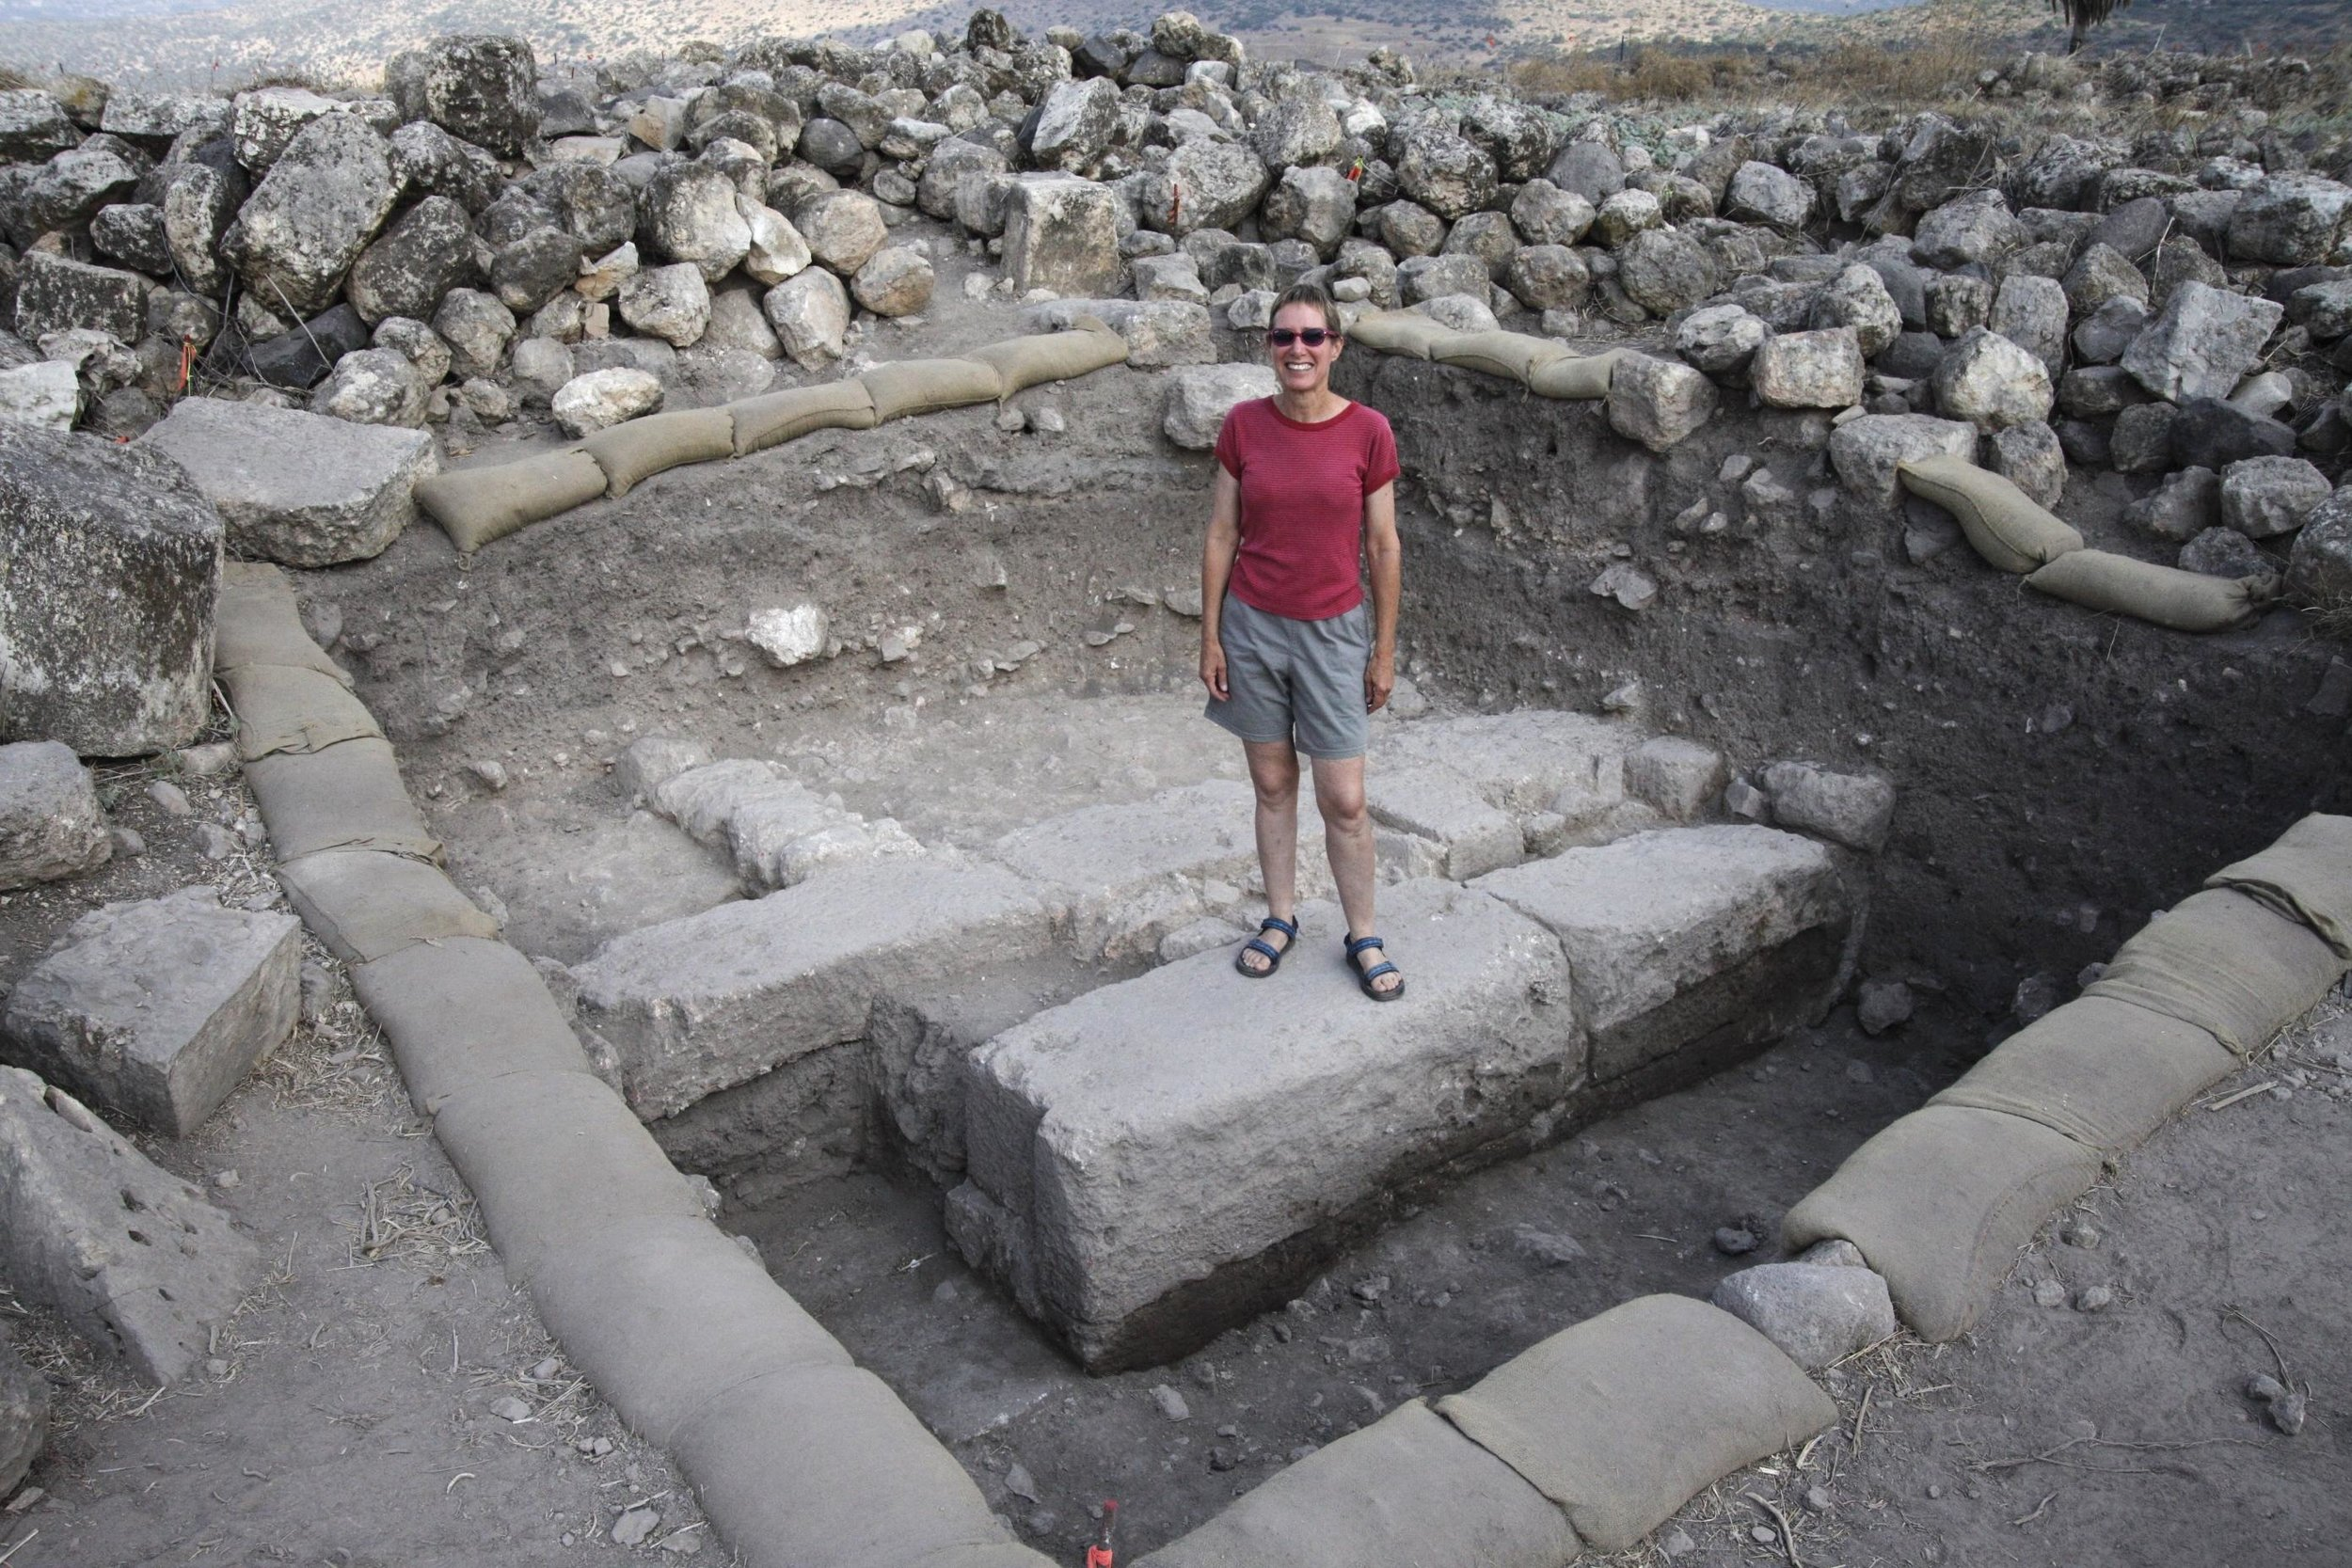 Dr. Jodi Magess directing excavations in the ancient village of Huqoq in Israel's Galilee